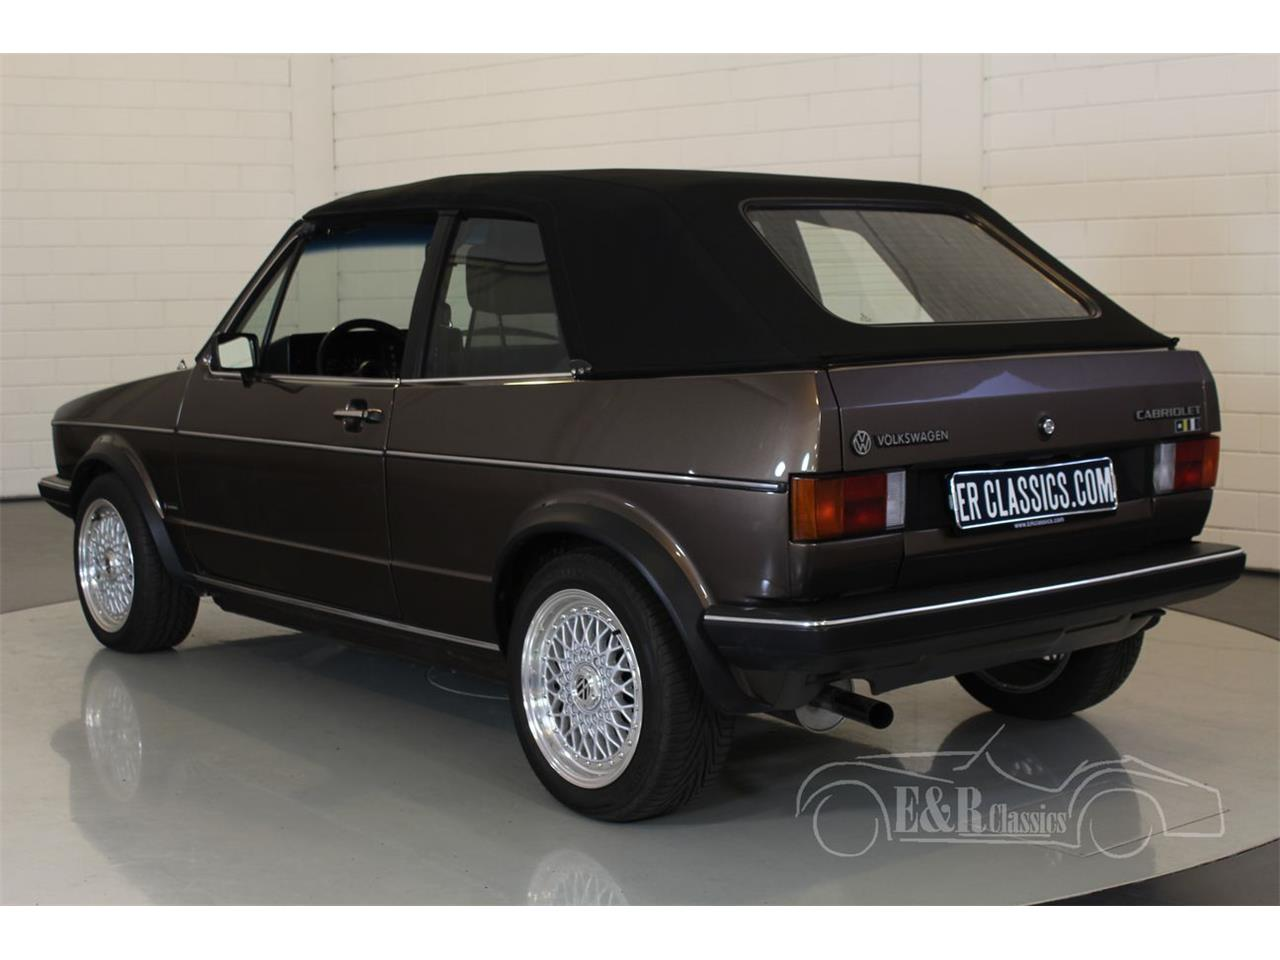 Large Picture of '84 Volkswagen Golf located in - Keine Angabe - - $19,100.00 Offered by E & R Classics - PH4B